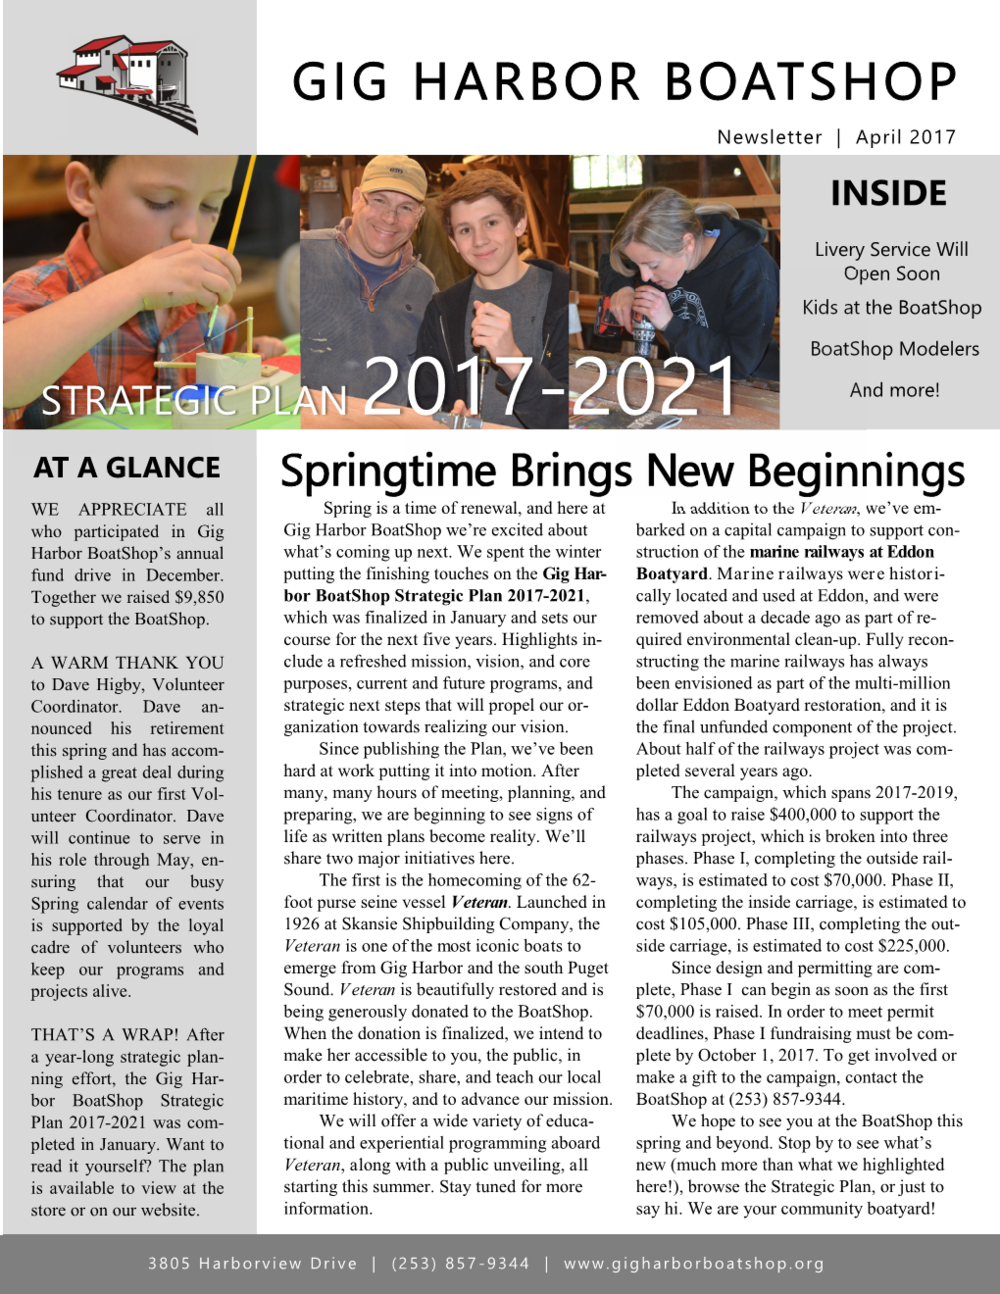 April 2017 Newsletter (click on image to enlarge)